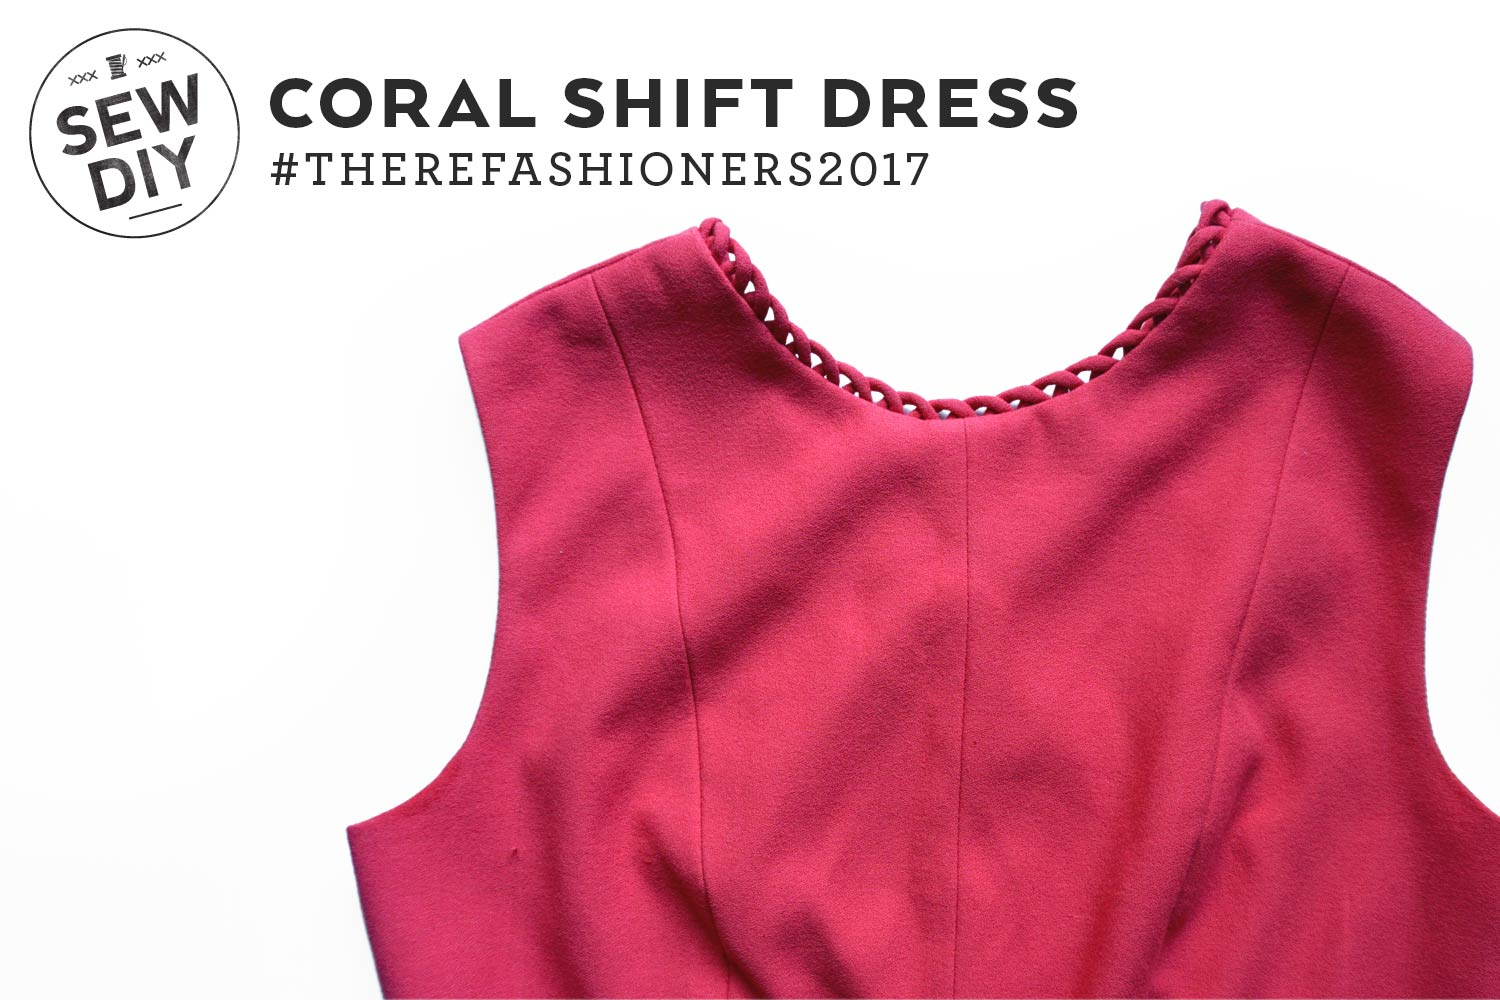 Suit to Dress Refashion – The Refashioners 2017   Sew DIY